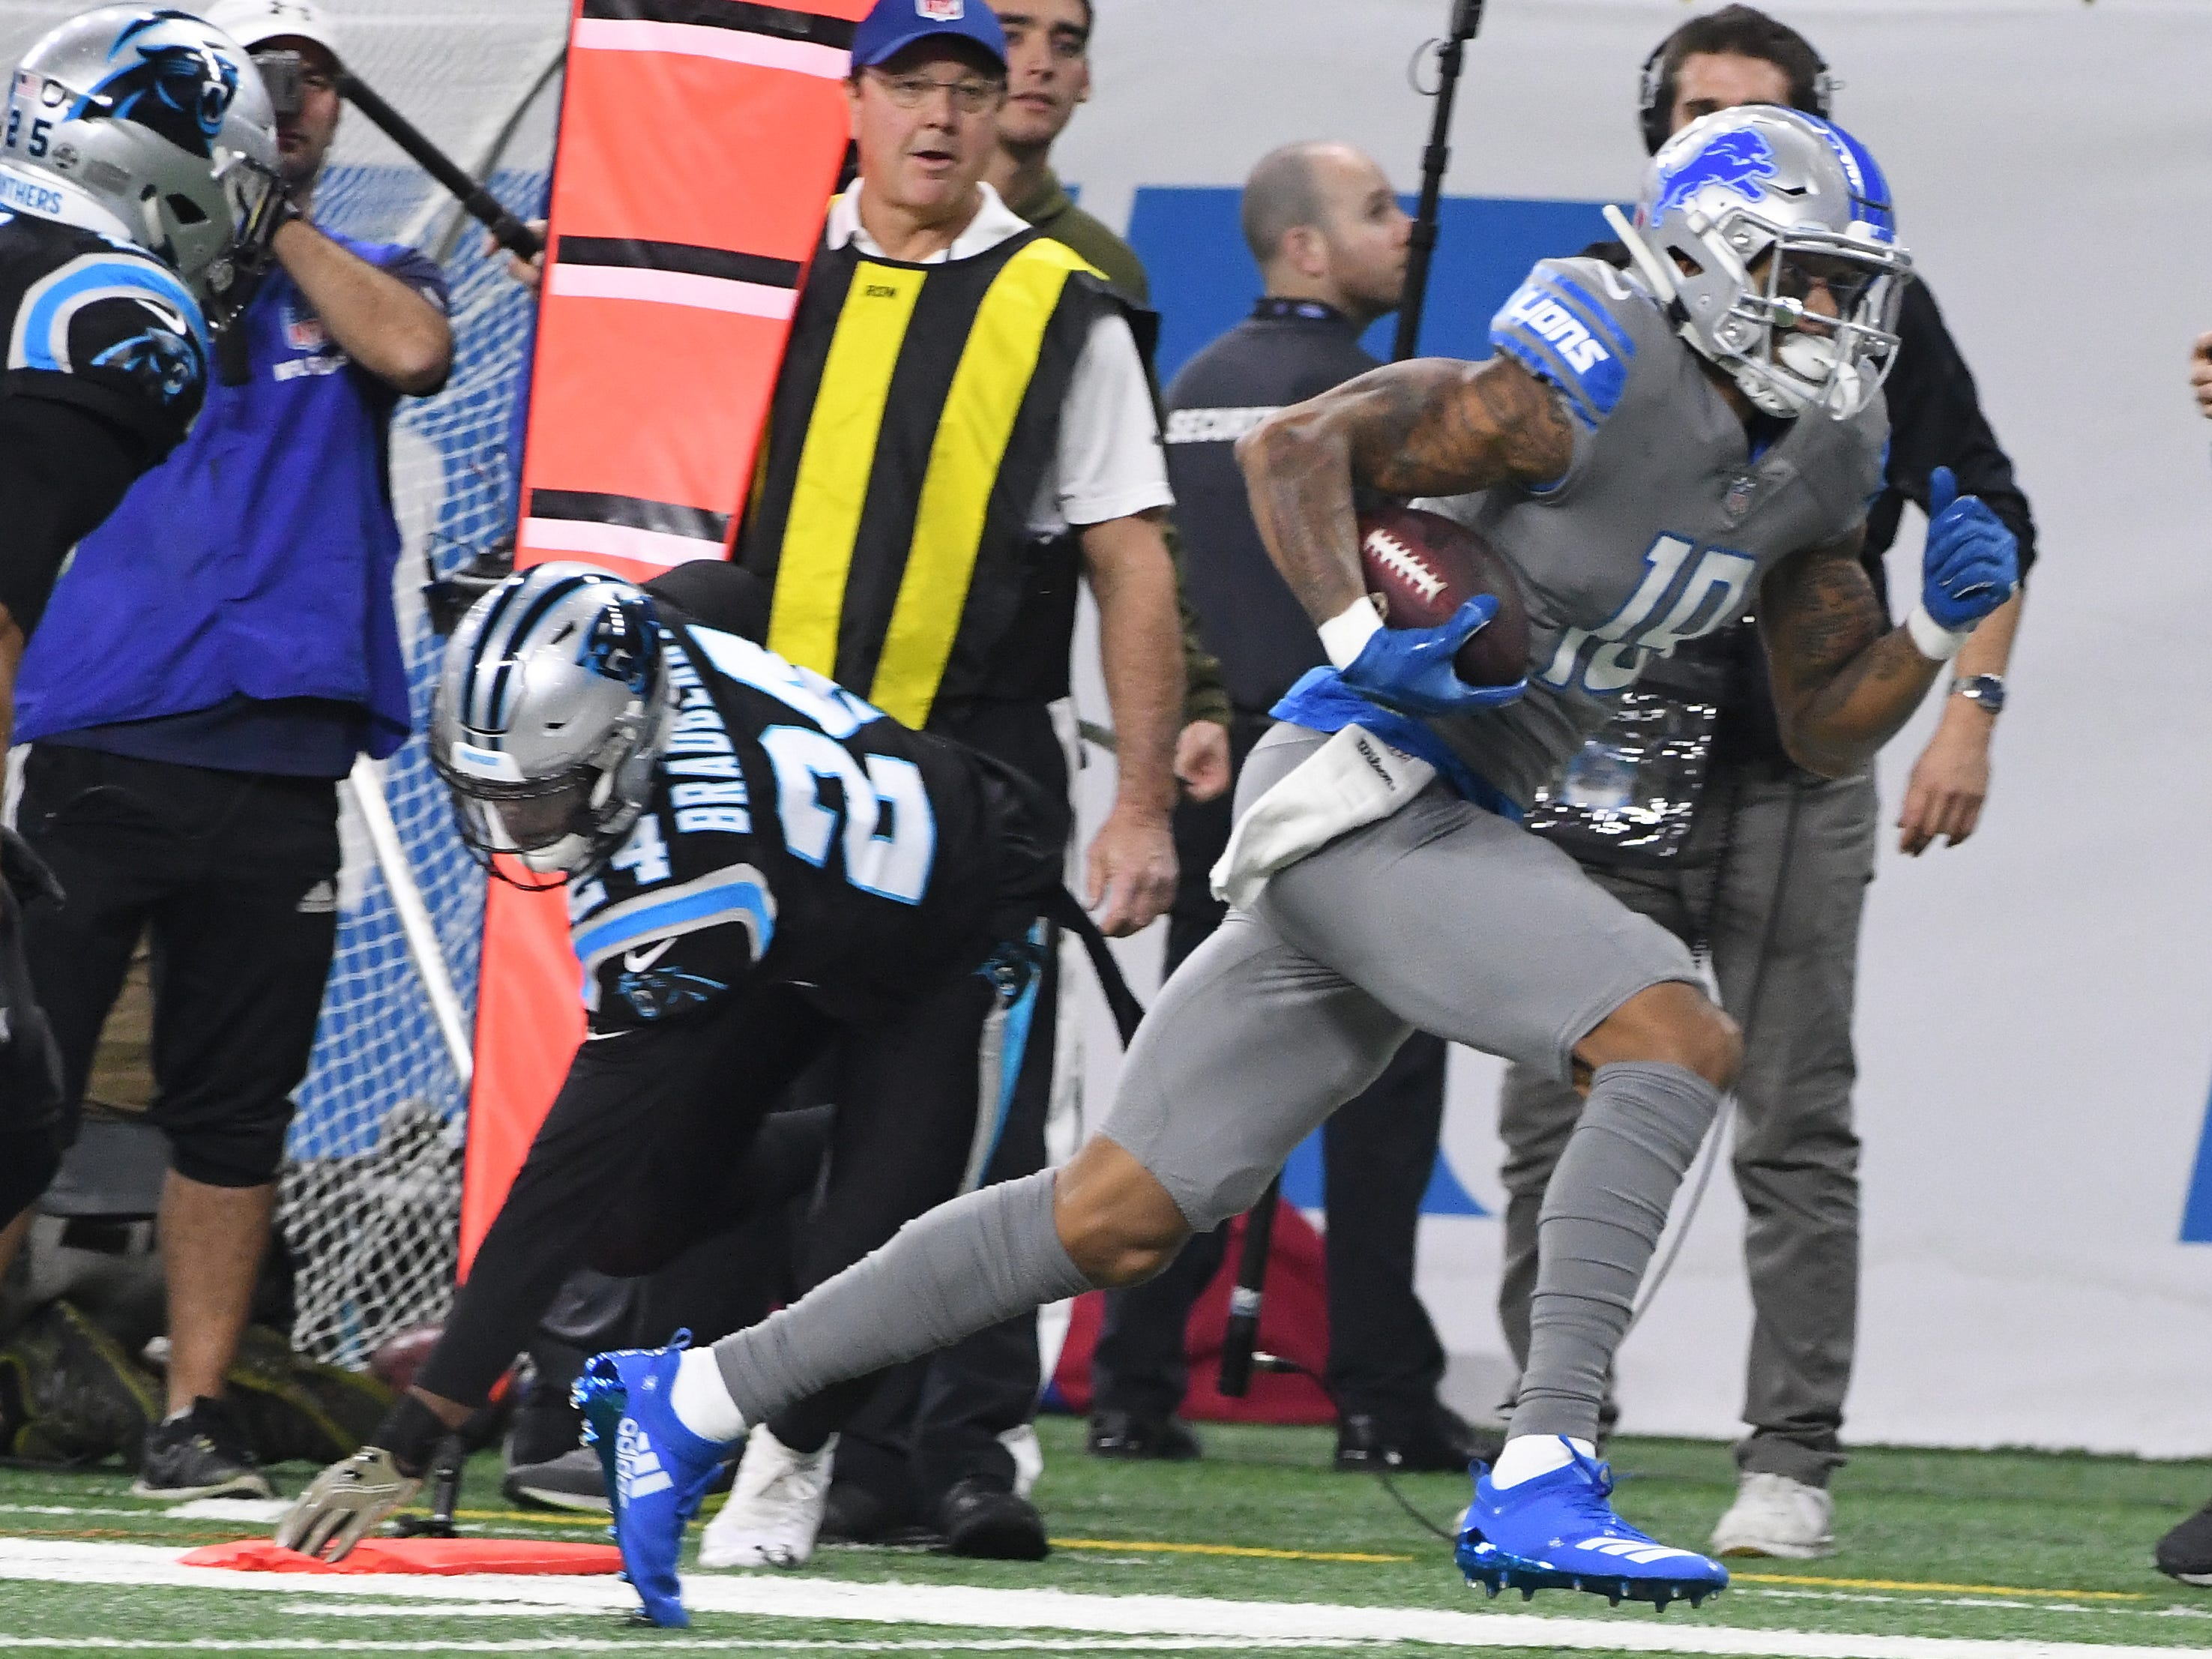 Lions' Kenny Golladay picks up extra yardage after pulling down a reception over Panthers' James Bradberry in the first quarter.